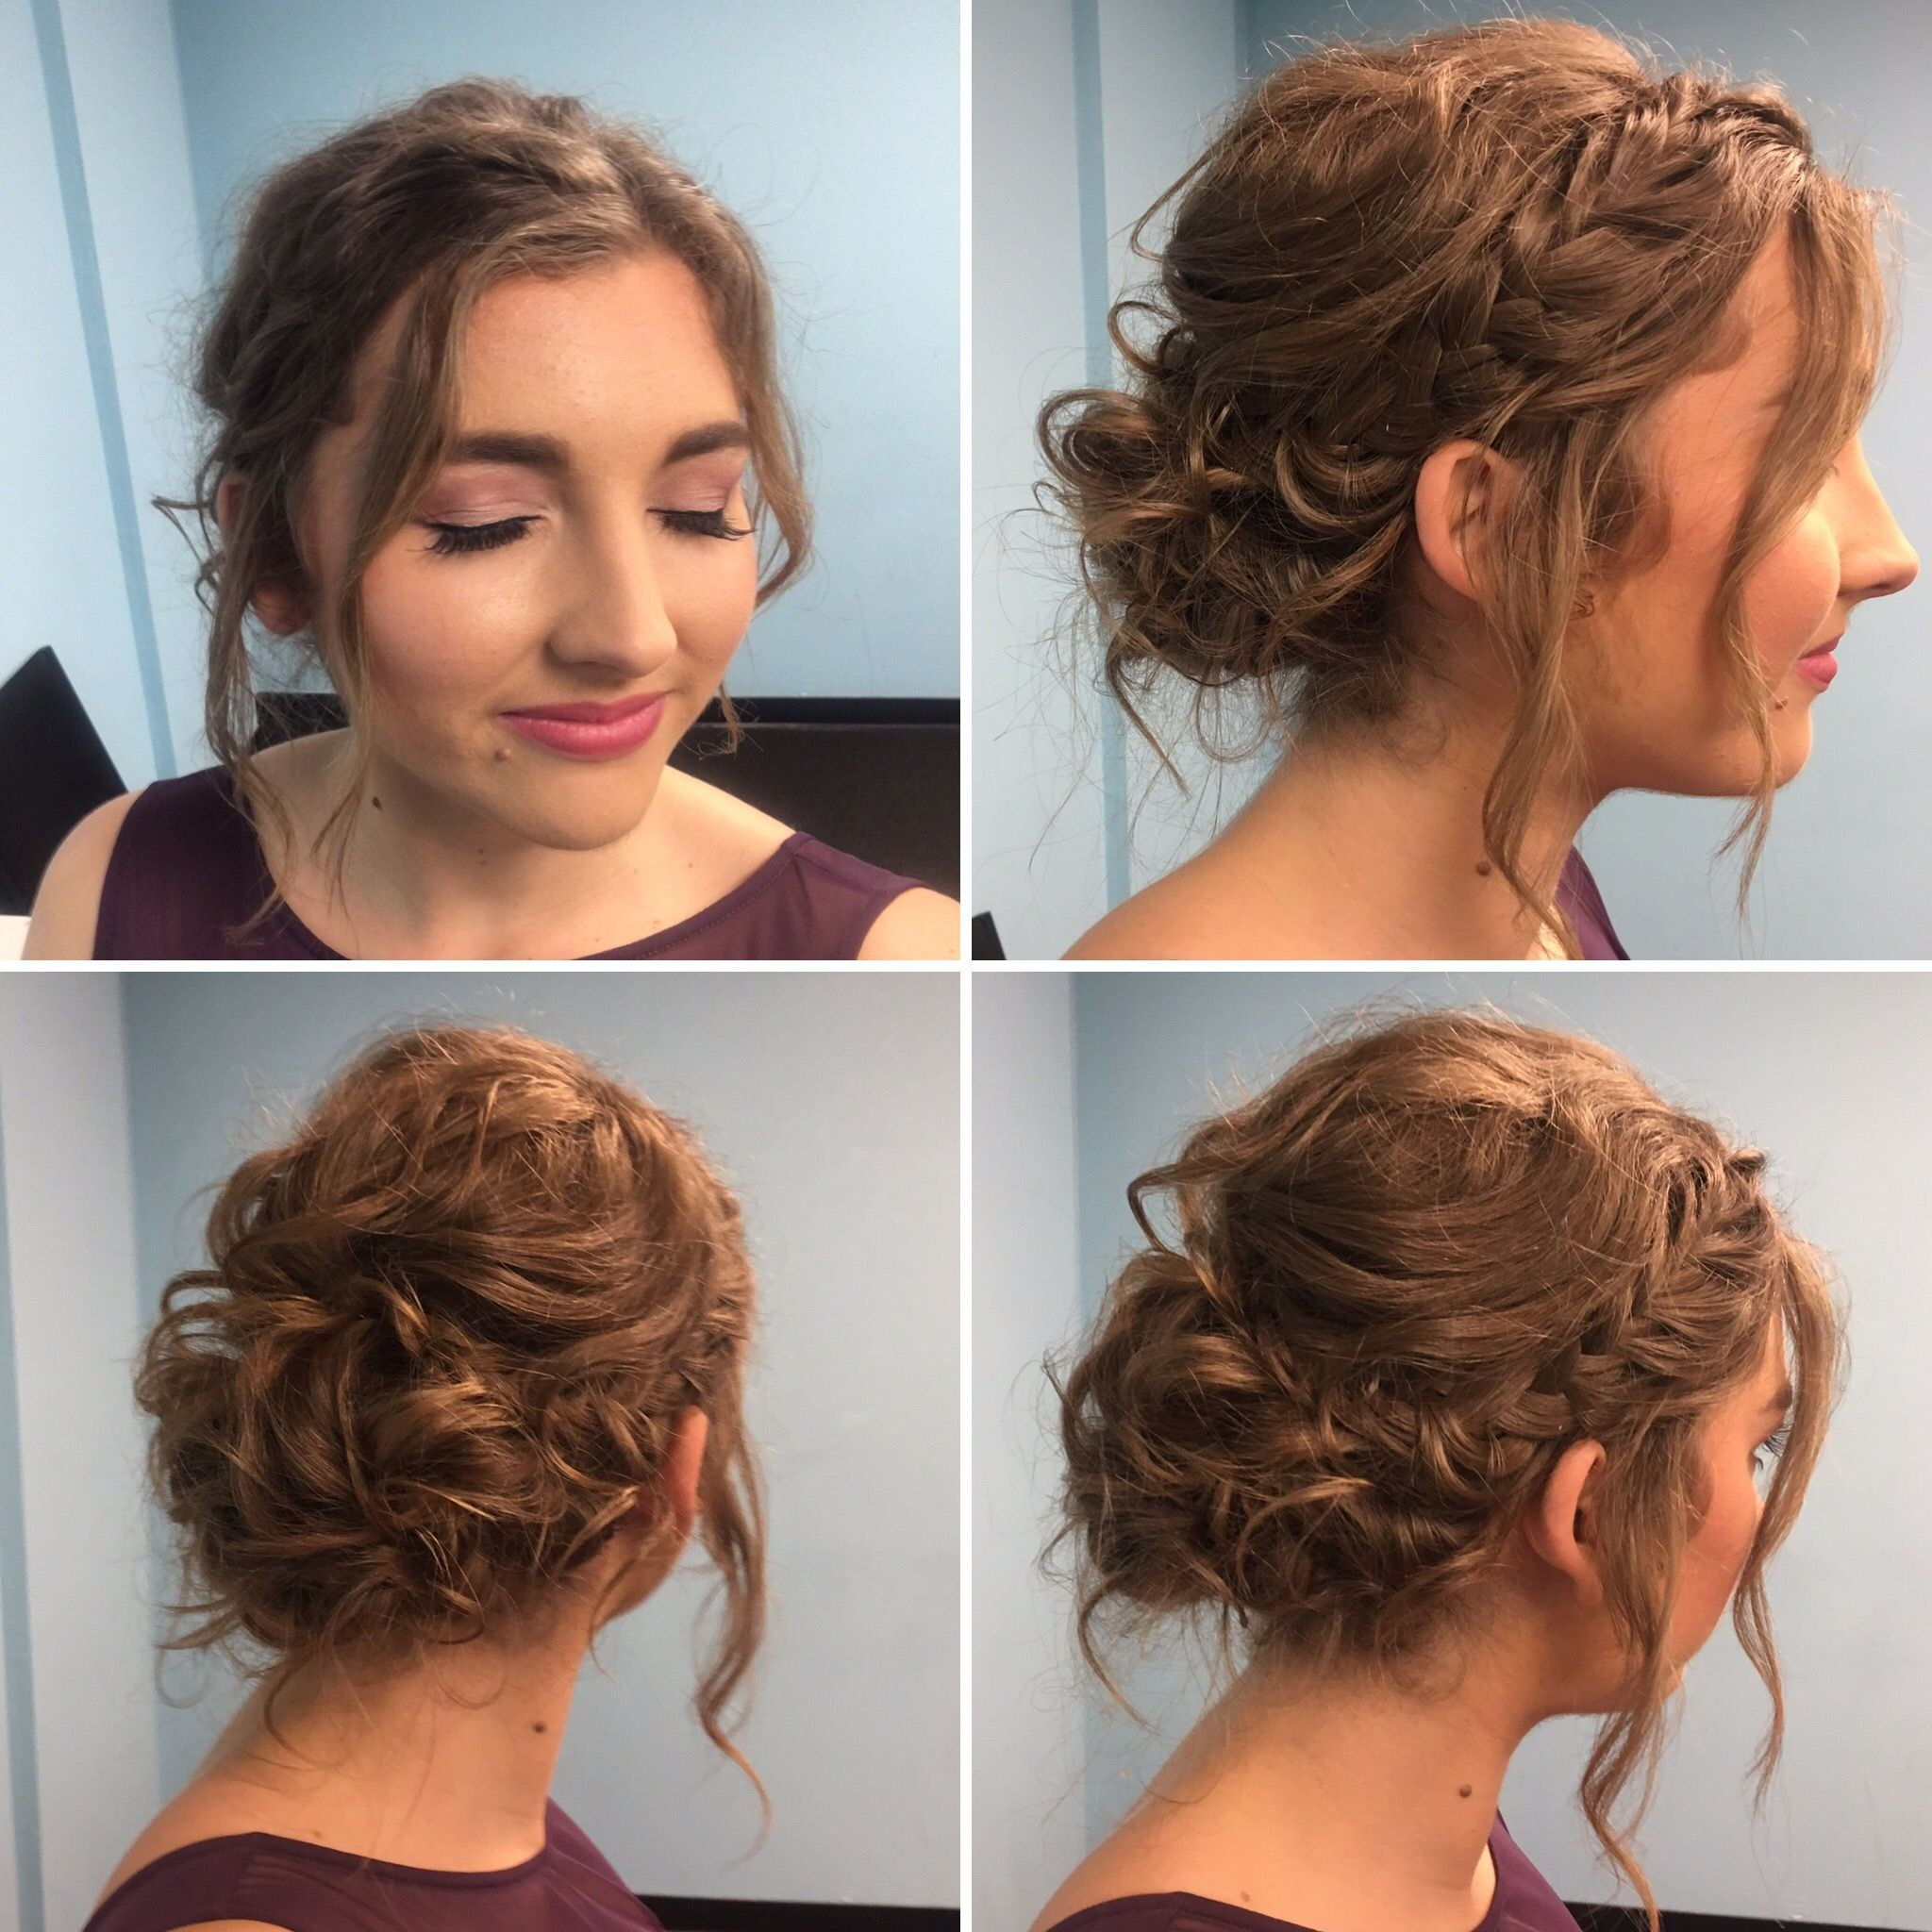 Bridesmaid hair. Short hair updo. Bridesmaid makeup